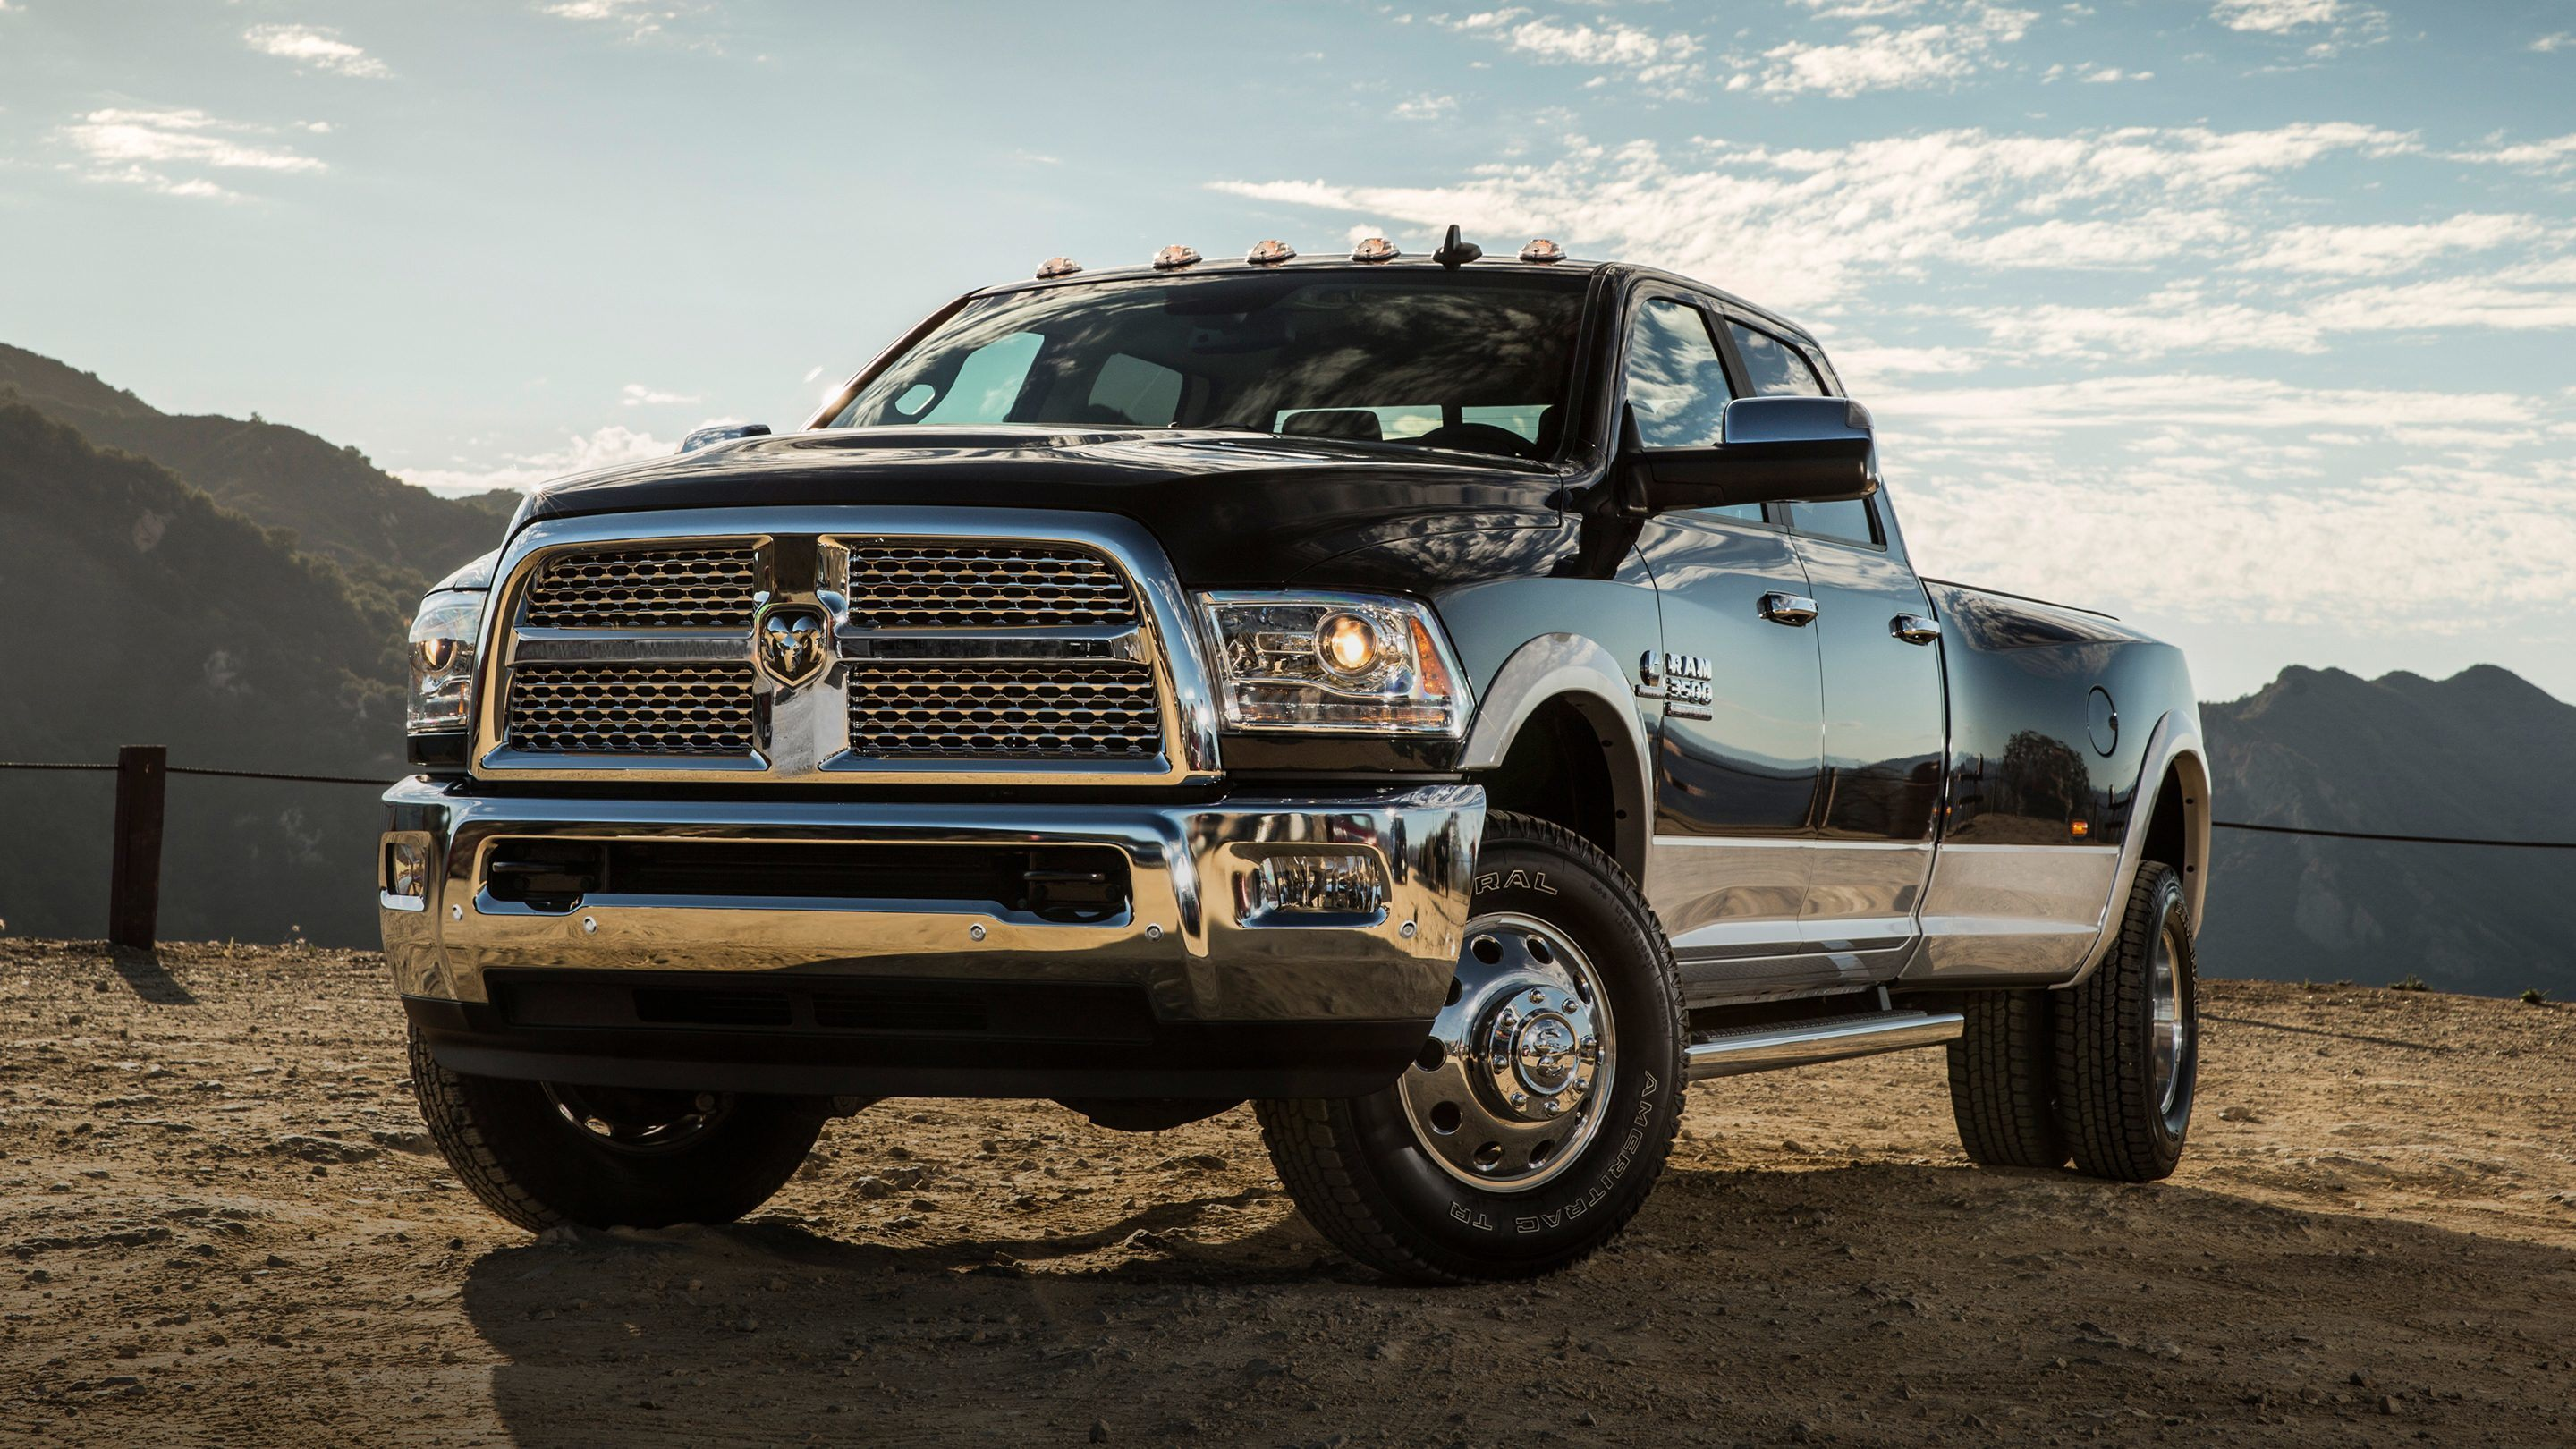 Ram 3500 in Hillsborough